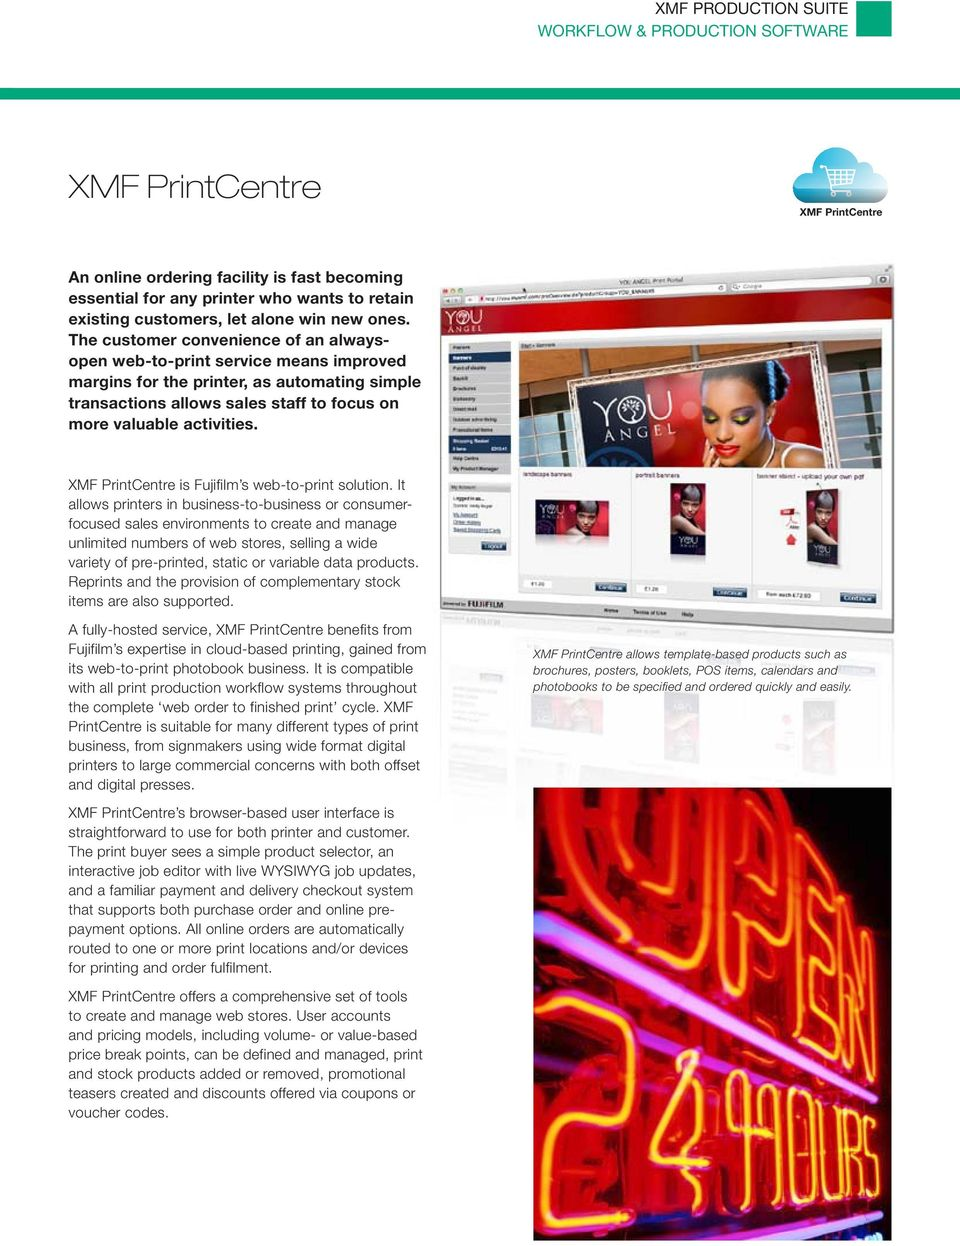 PrintCentre is Fujifilm s web-to-print solution.